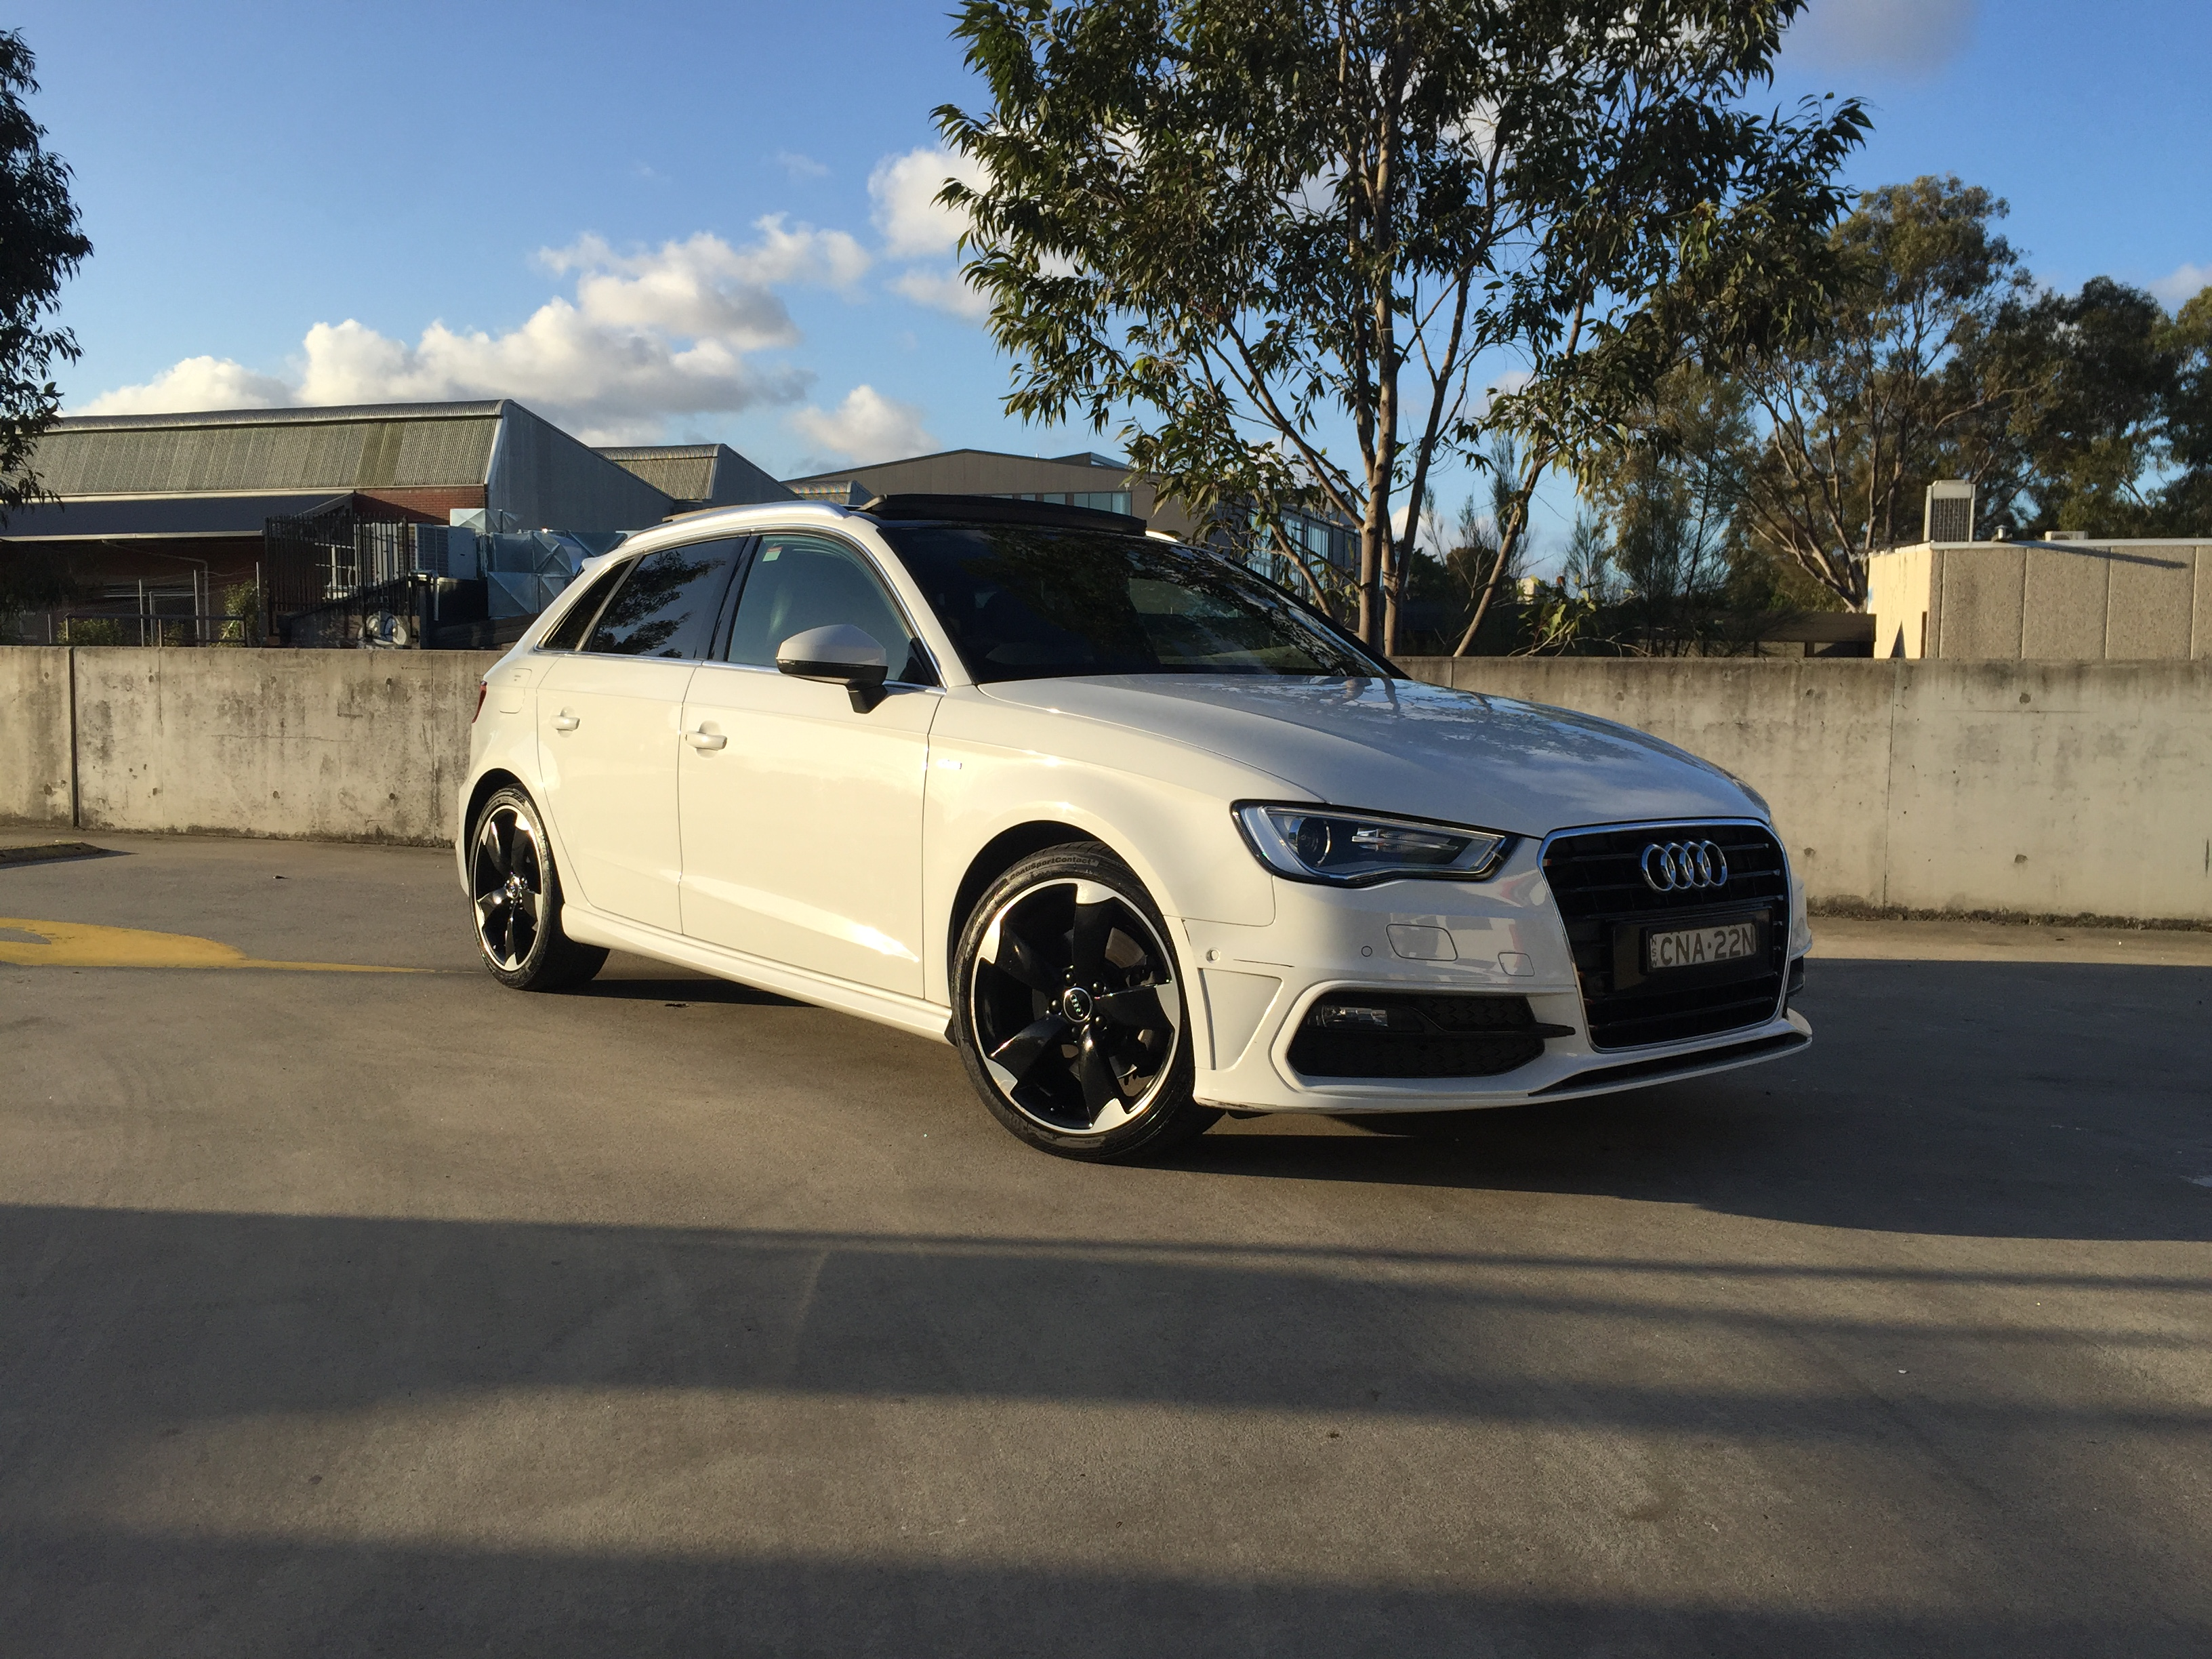 Picture of Anthony's 2013 Audi A3 Sportsback